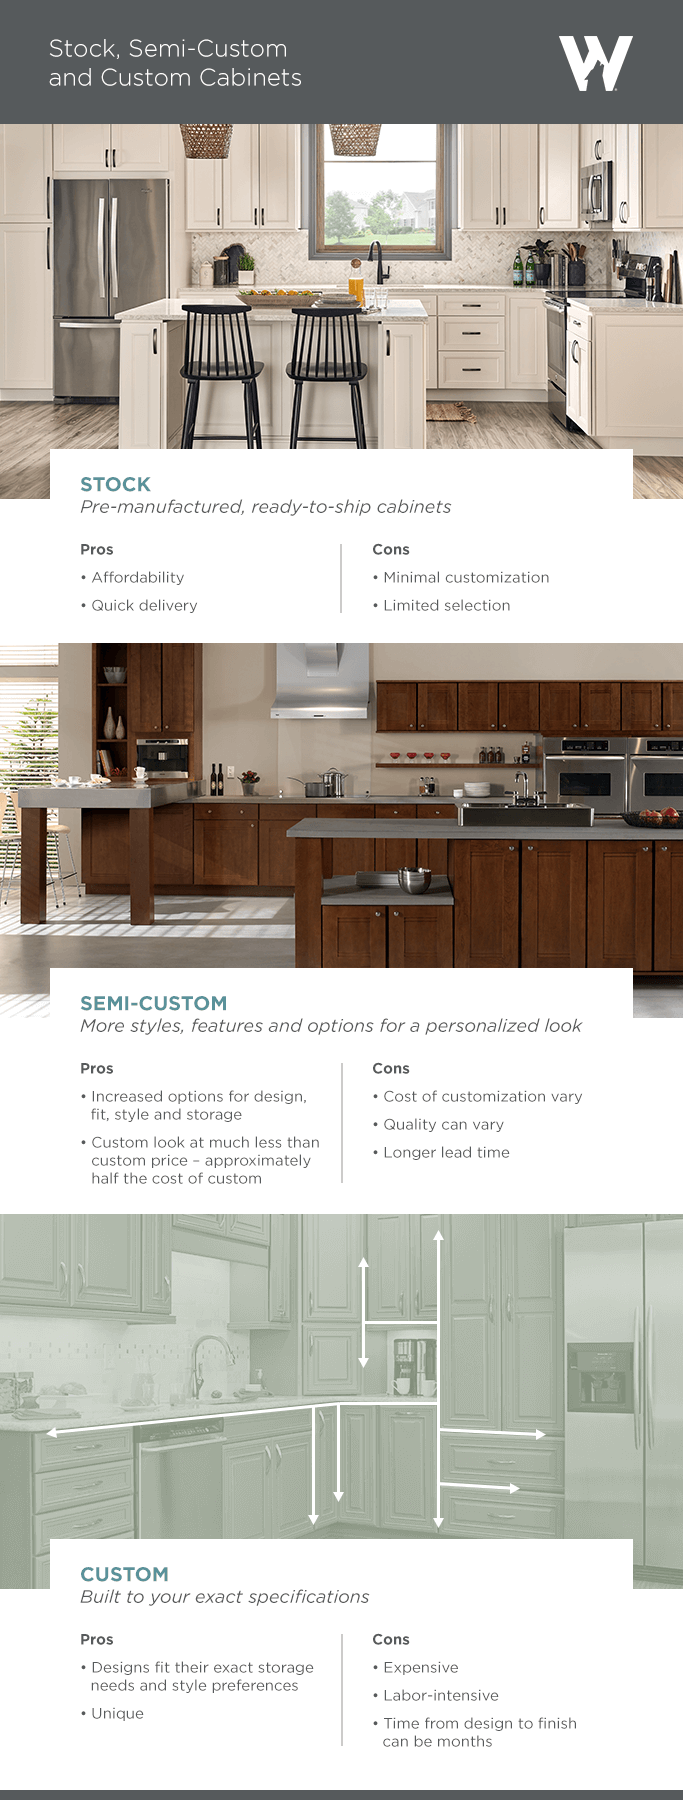 Basic Types Of Cabinets Wolf Home Products